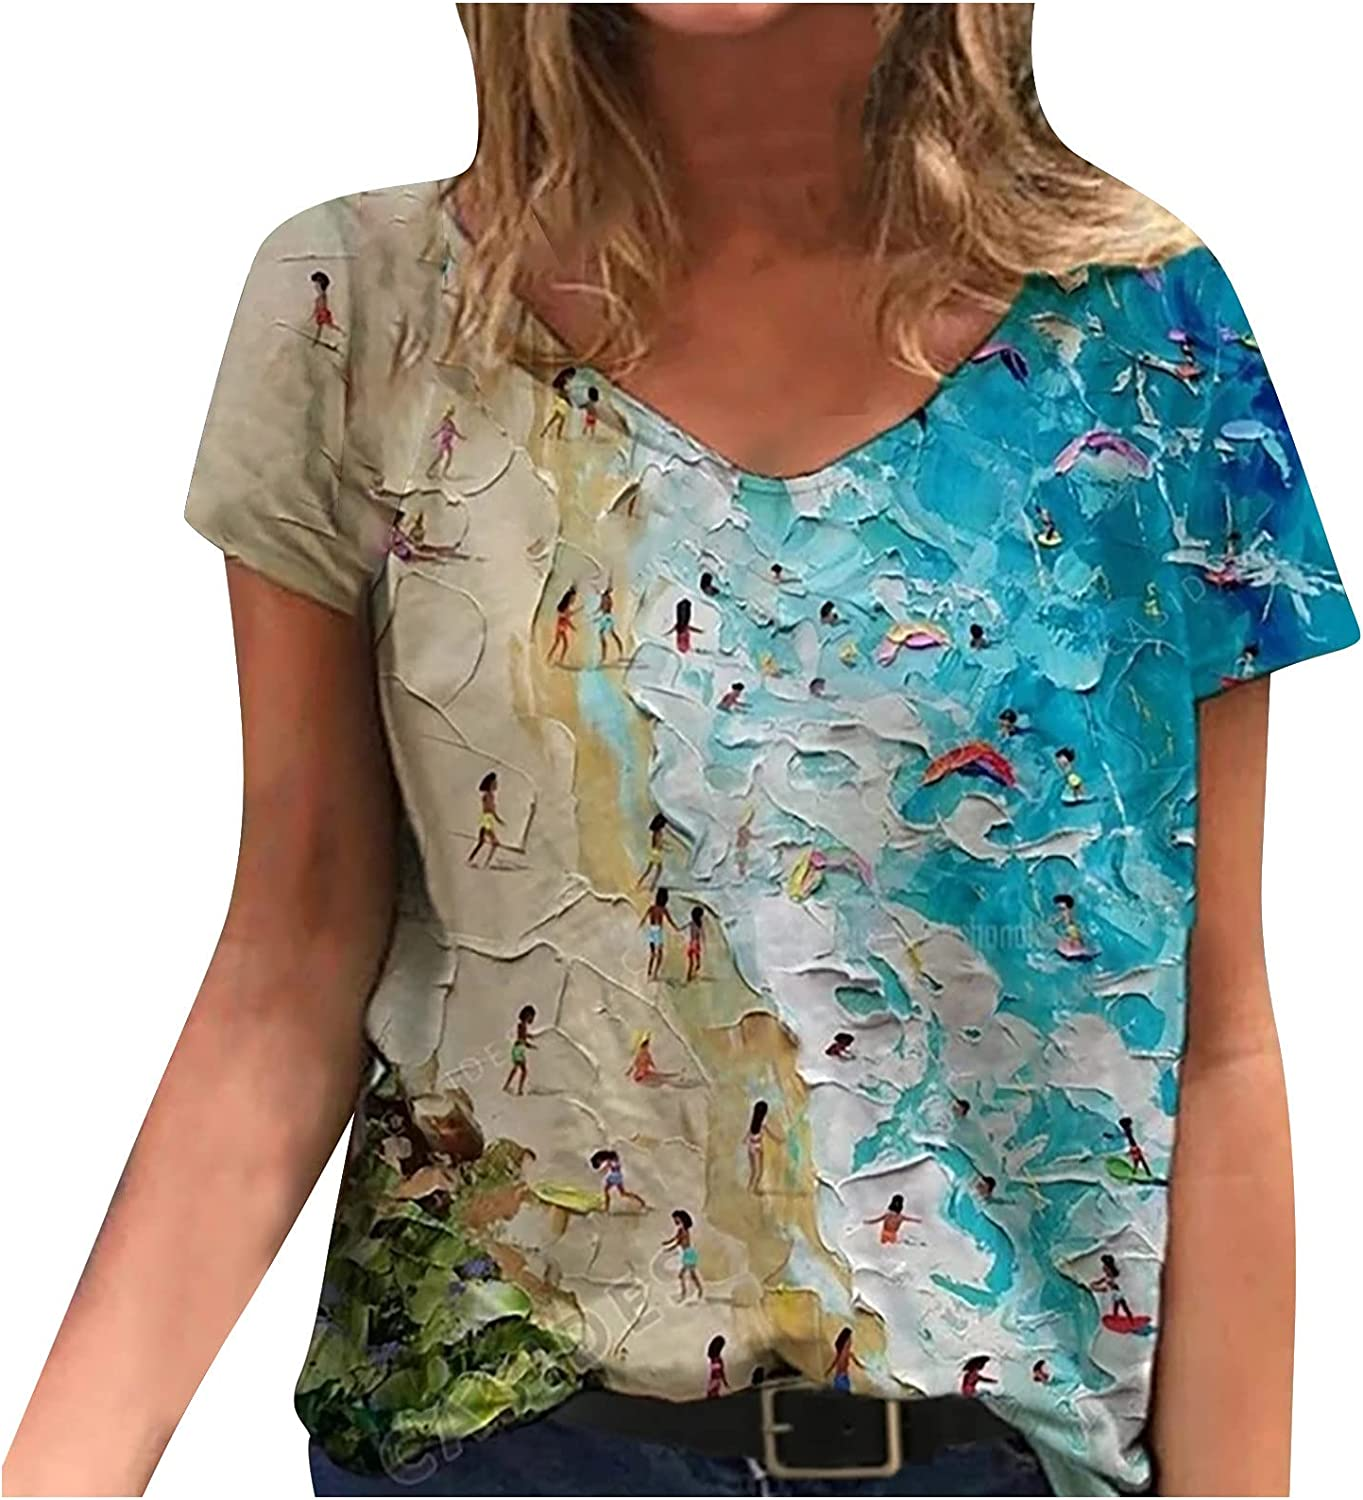 Women's Sunflower Graphic Tees Short Sleeve V Neck Tops Art Oil Painting Loose Casual Summer T-Shirts Clothes